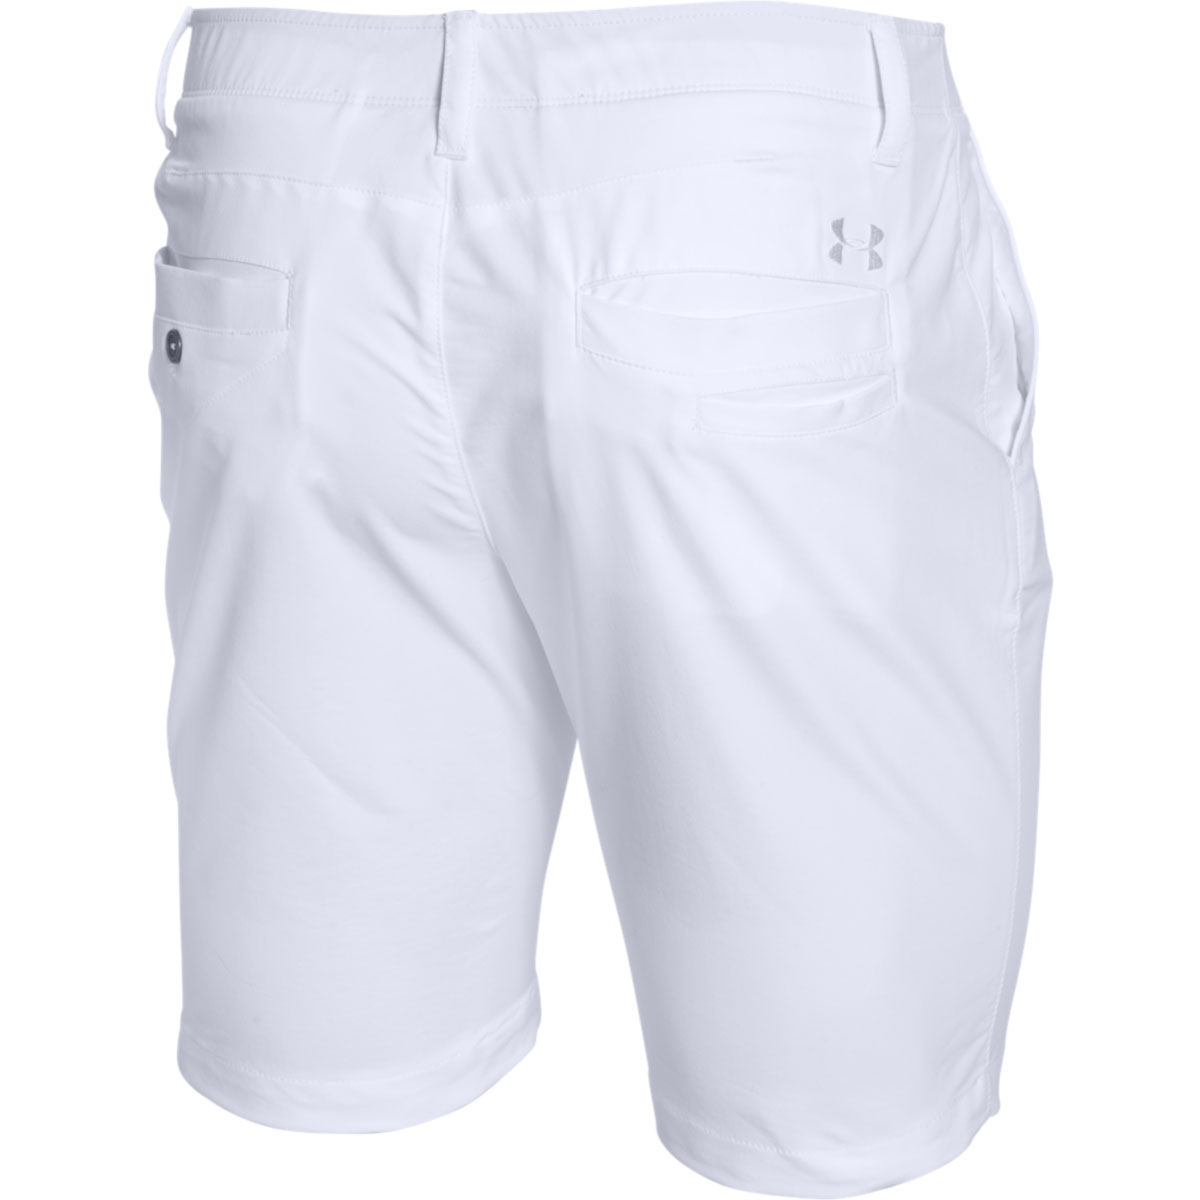 Under-Armour-Mens-UA-Match-Play-Taper-Tech-Performance-Golf-Shorts-29-OFF-RRP Indexbild 25